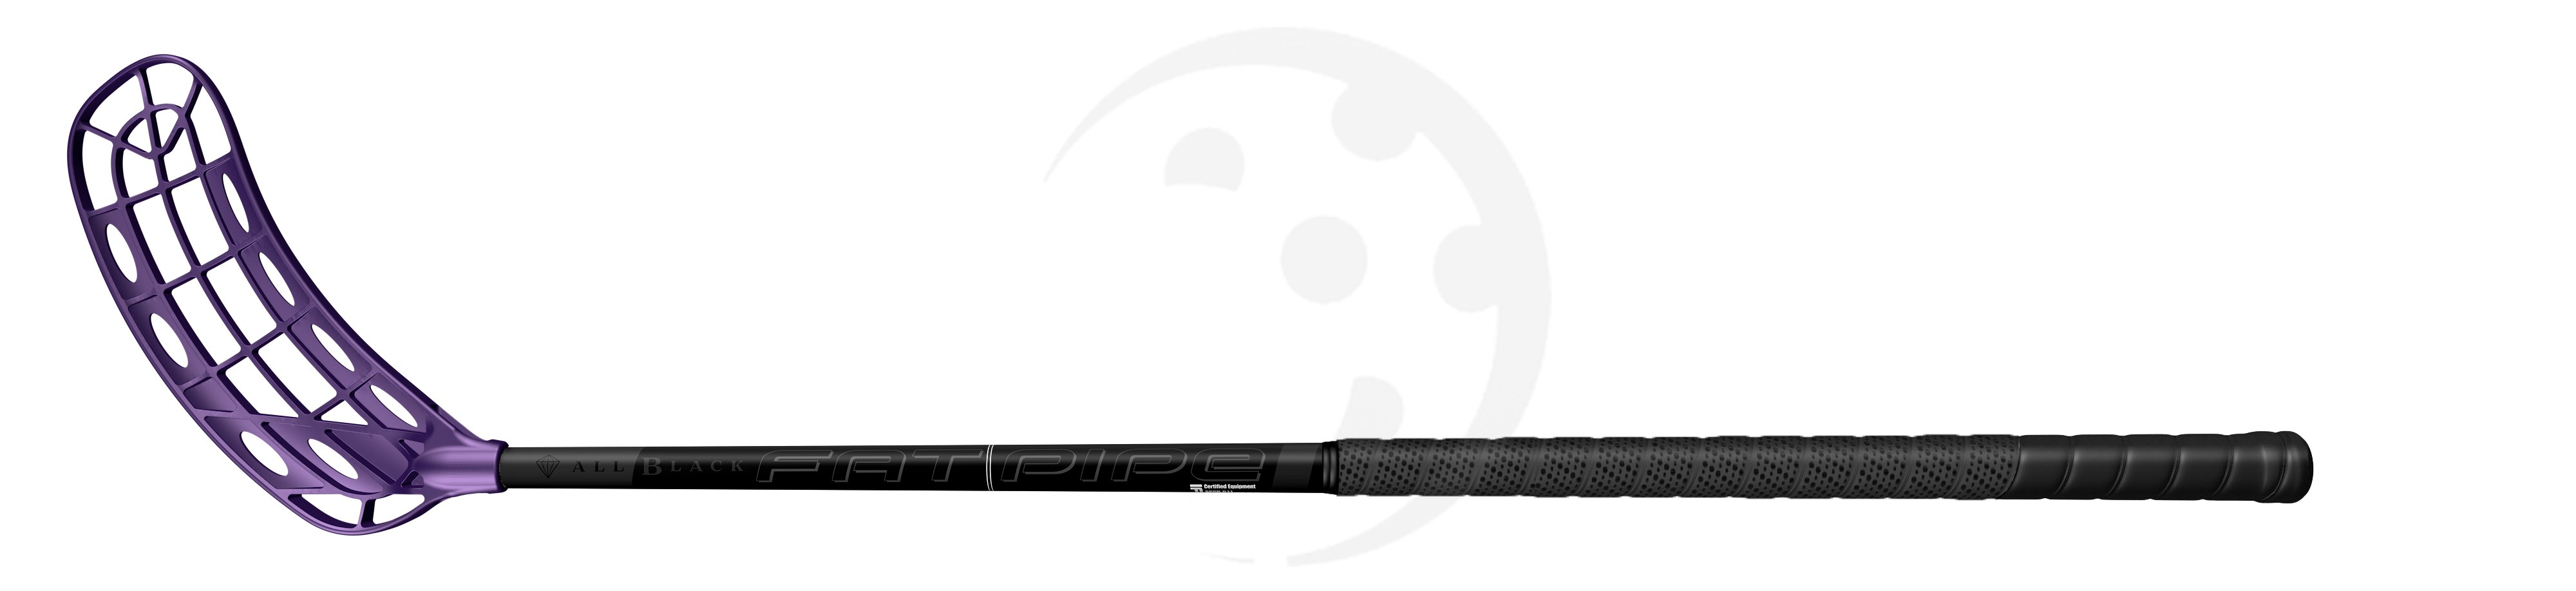 Fatpipe All Black 31 96